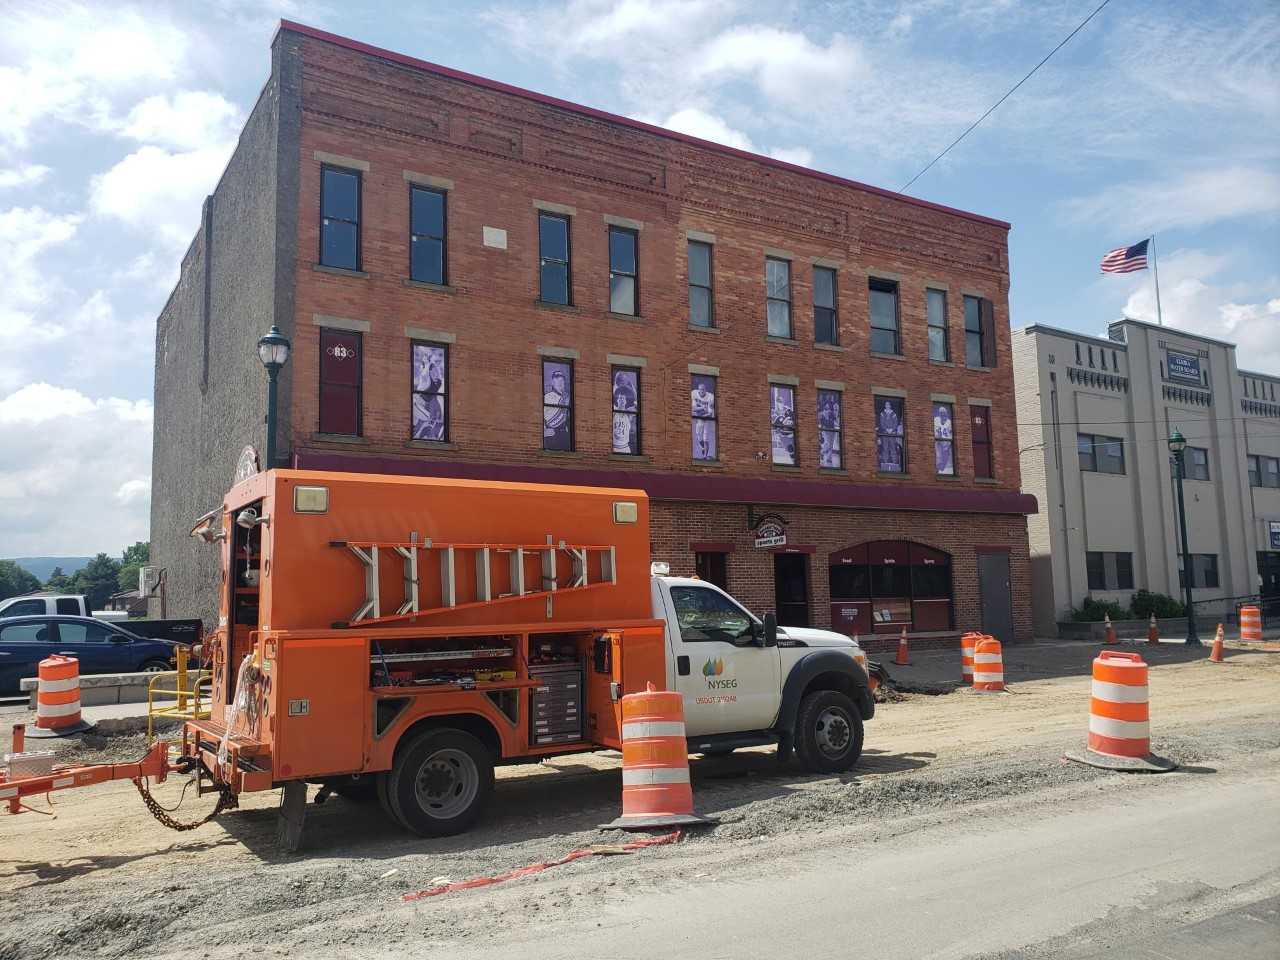 Construction workers hit power line on W. Water Street, local business without power